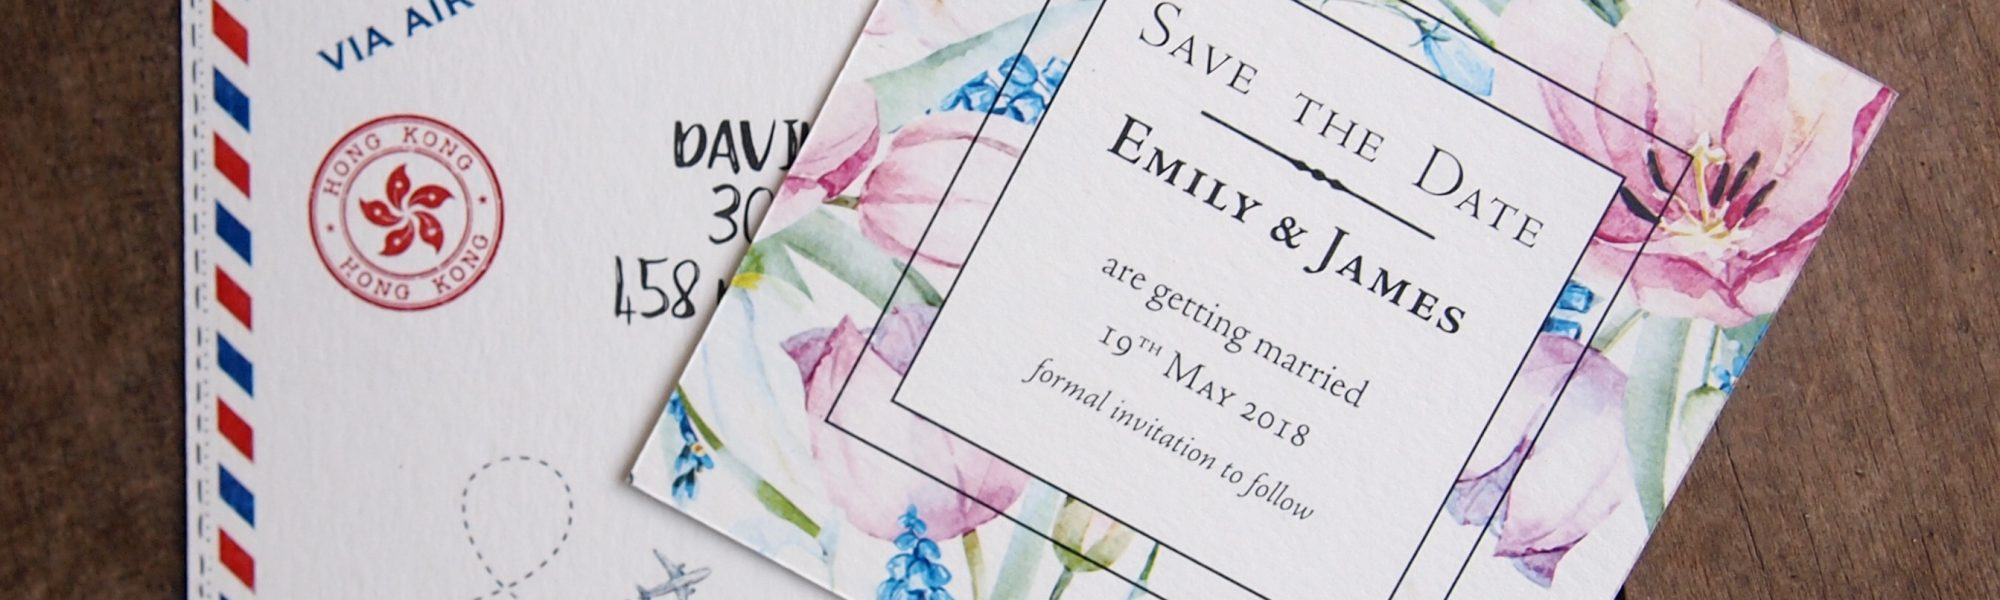 Digitally printed Wedding Stationery. Design by The Smallprint Co.